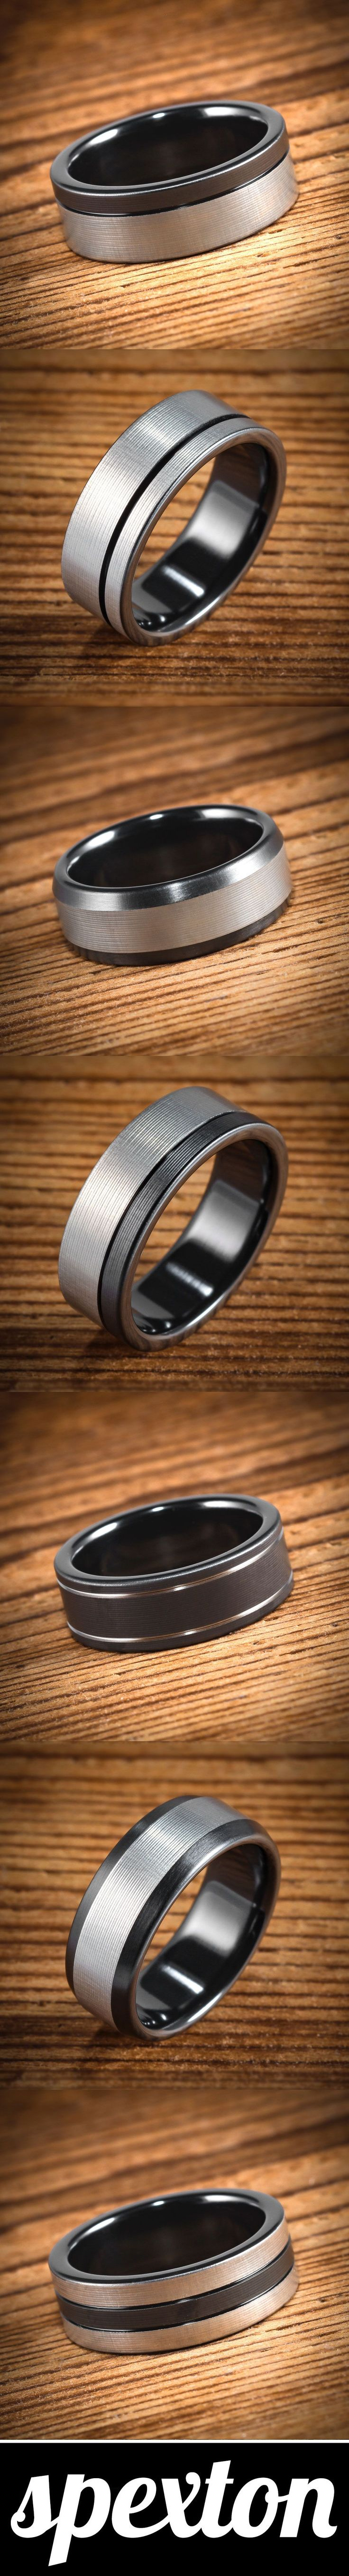 Handmade black and silver men's wedding bands by Spexton.